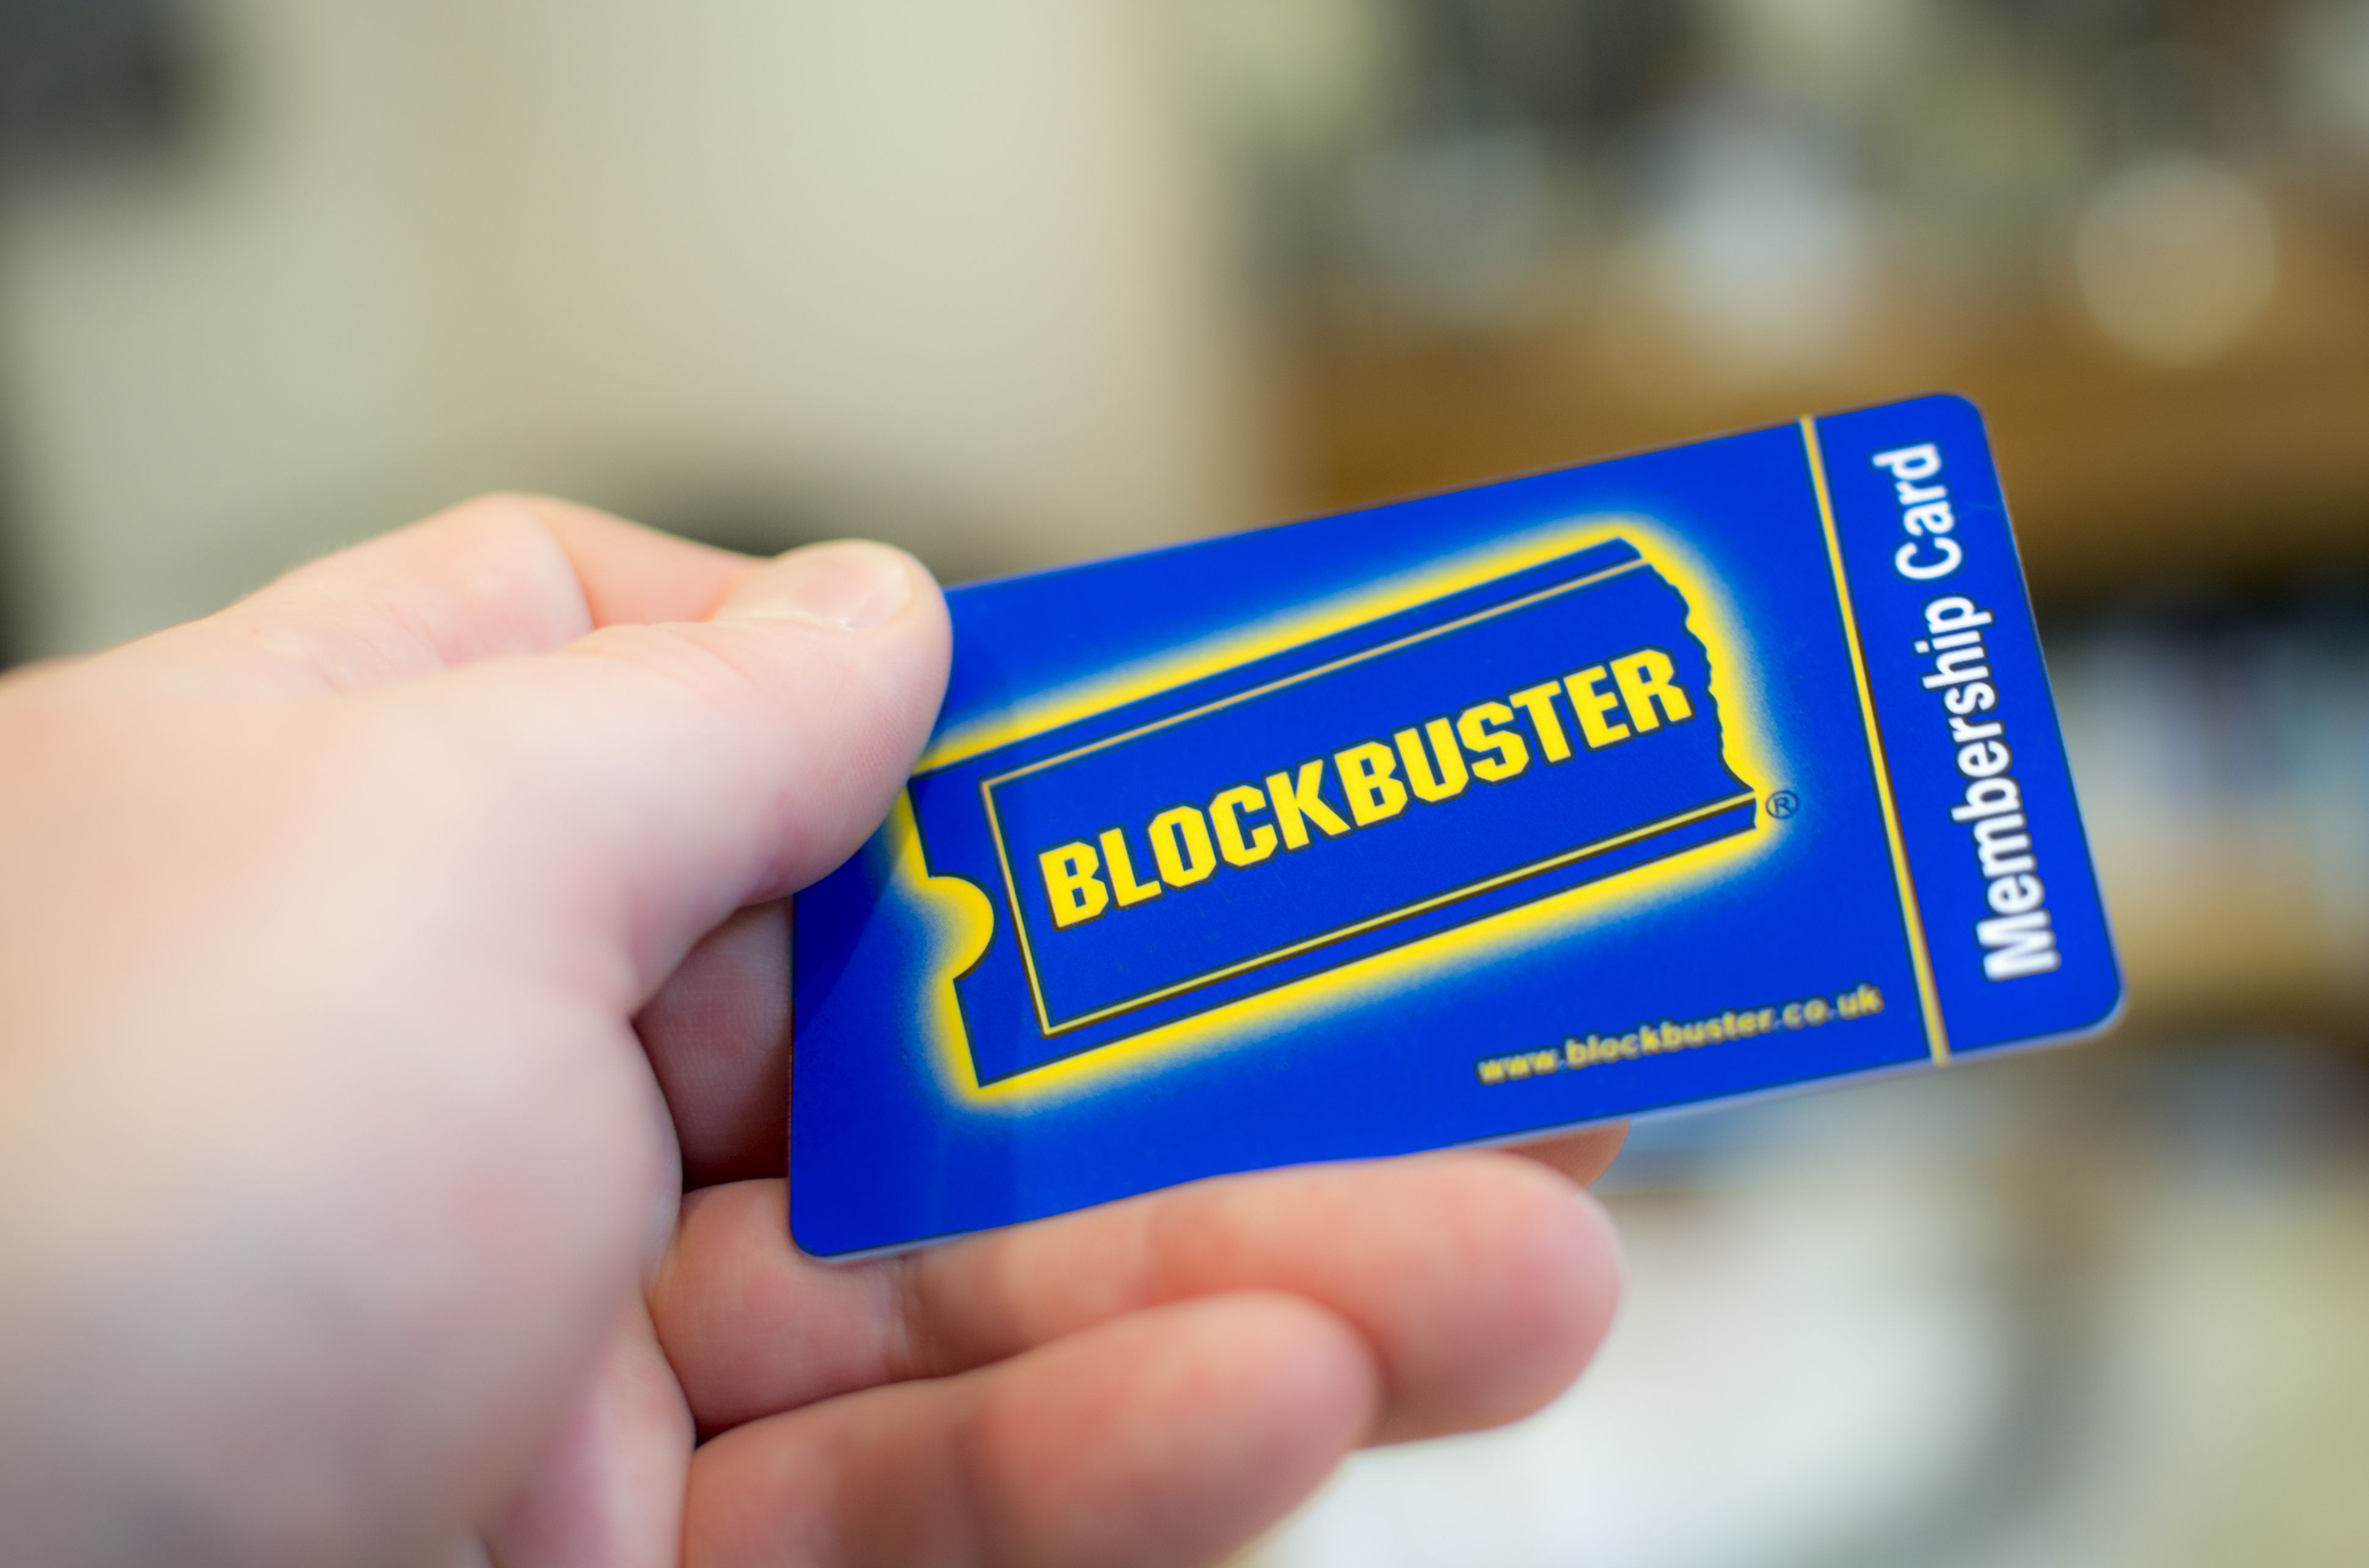 There's Only One Blockbuster Left in the United States